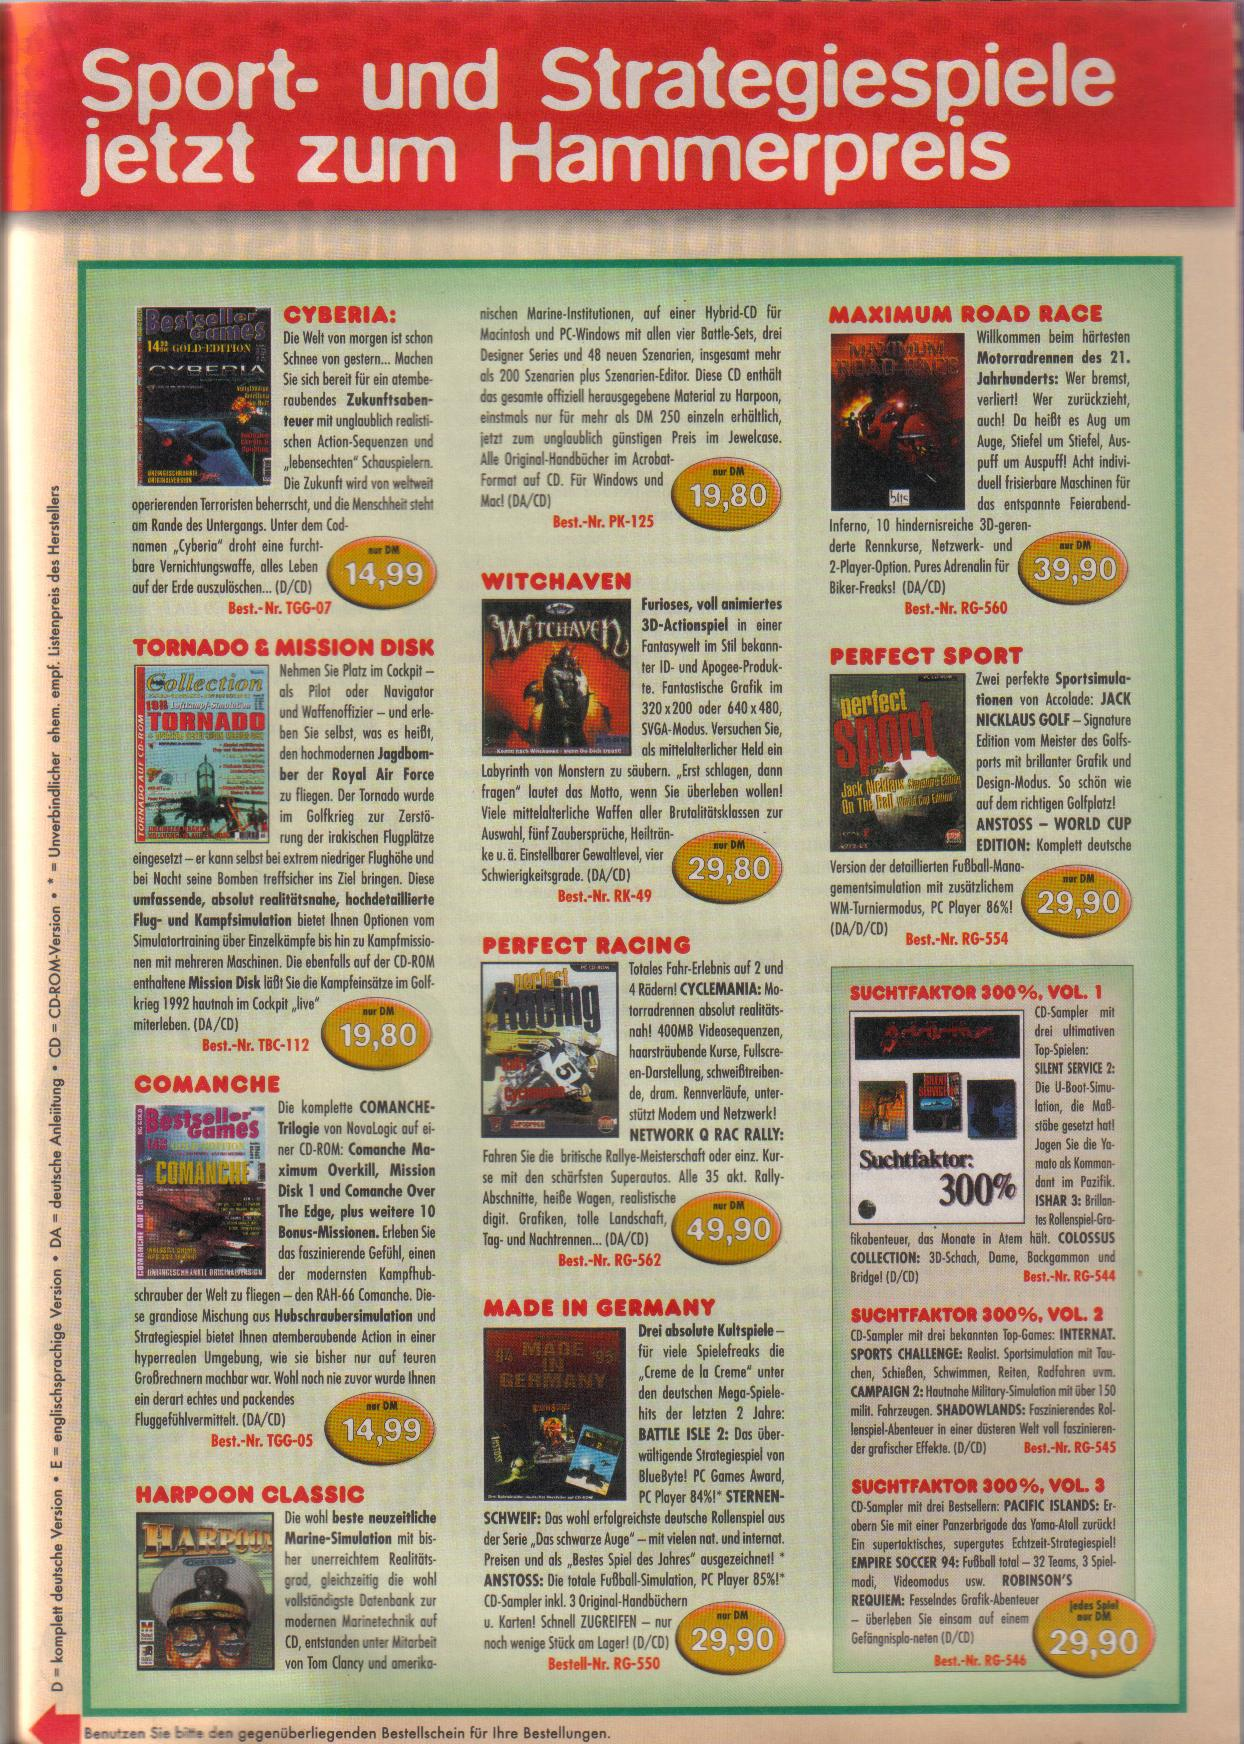 Dungeon Master II for PC (German, Best Seller Games) Page 27